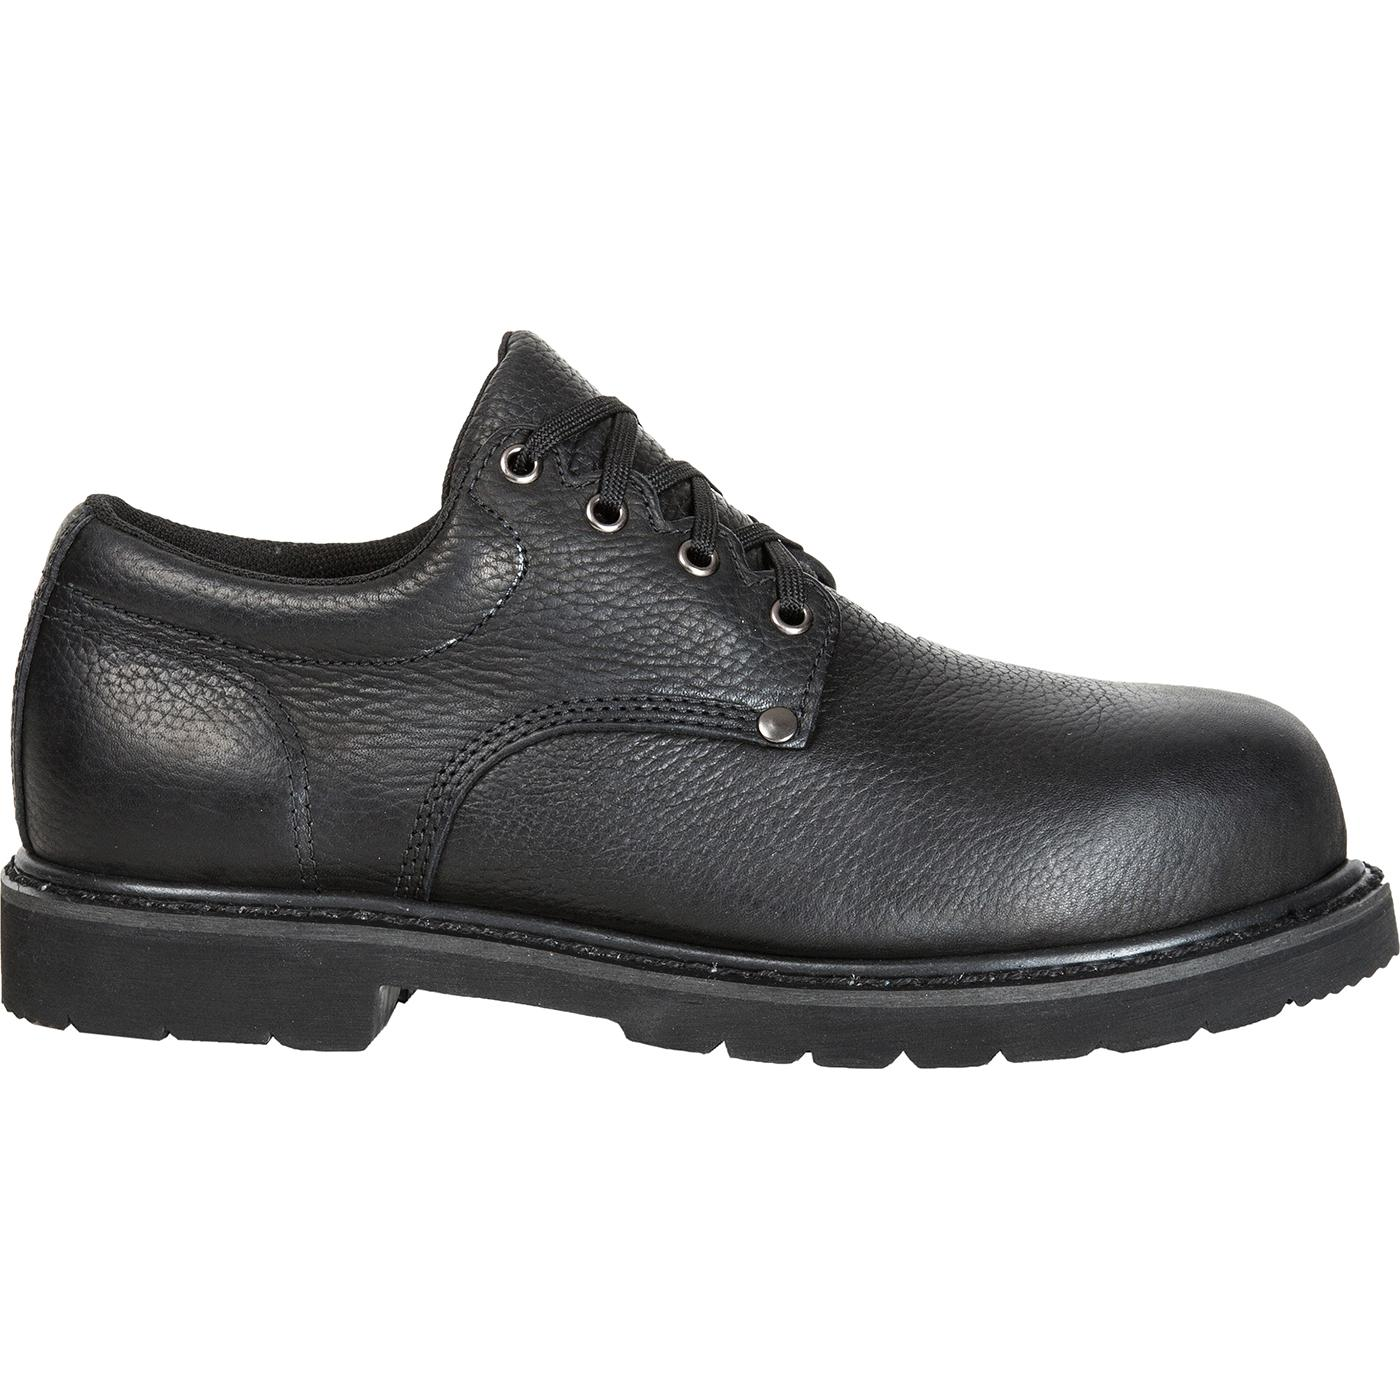 dress safety shoes composite toe style guru fashion